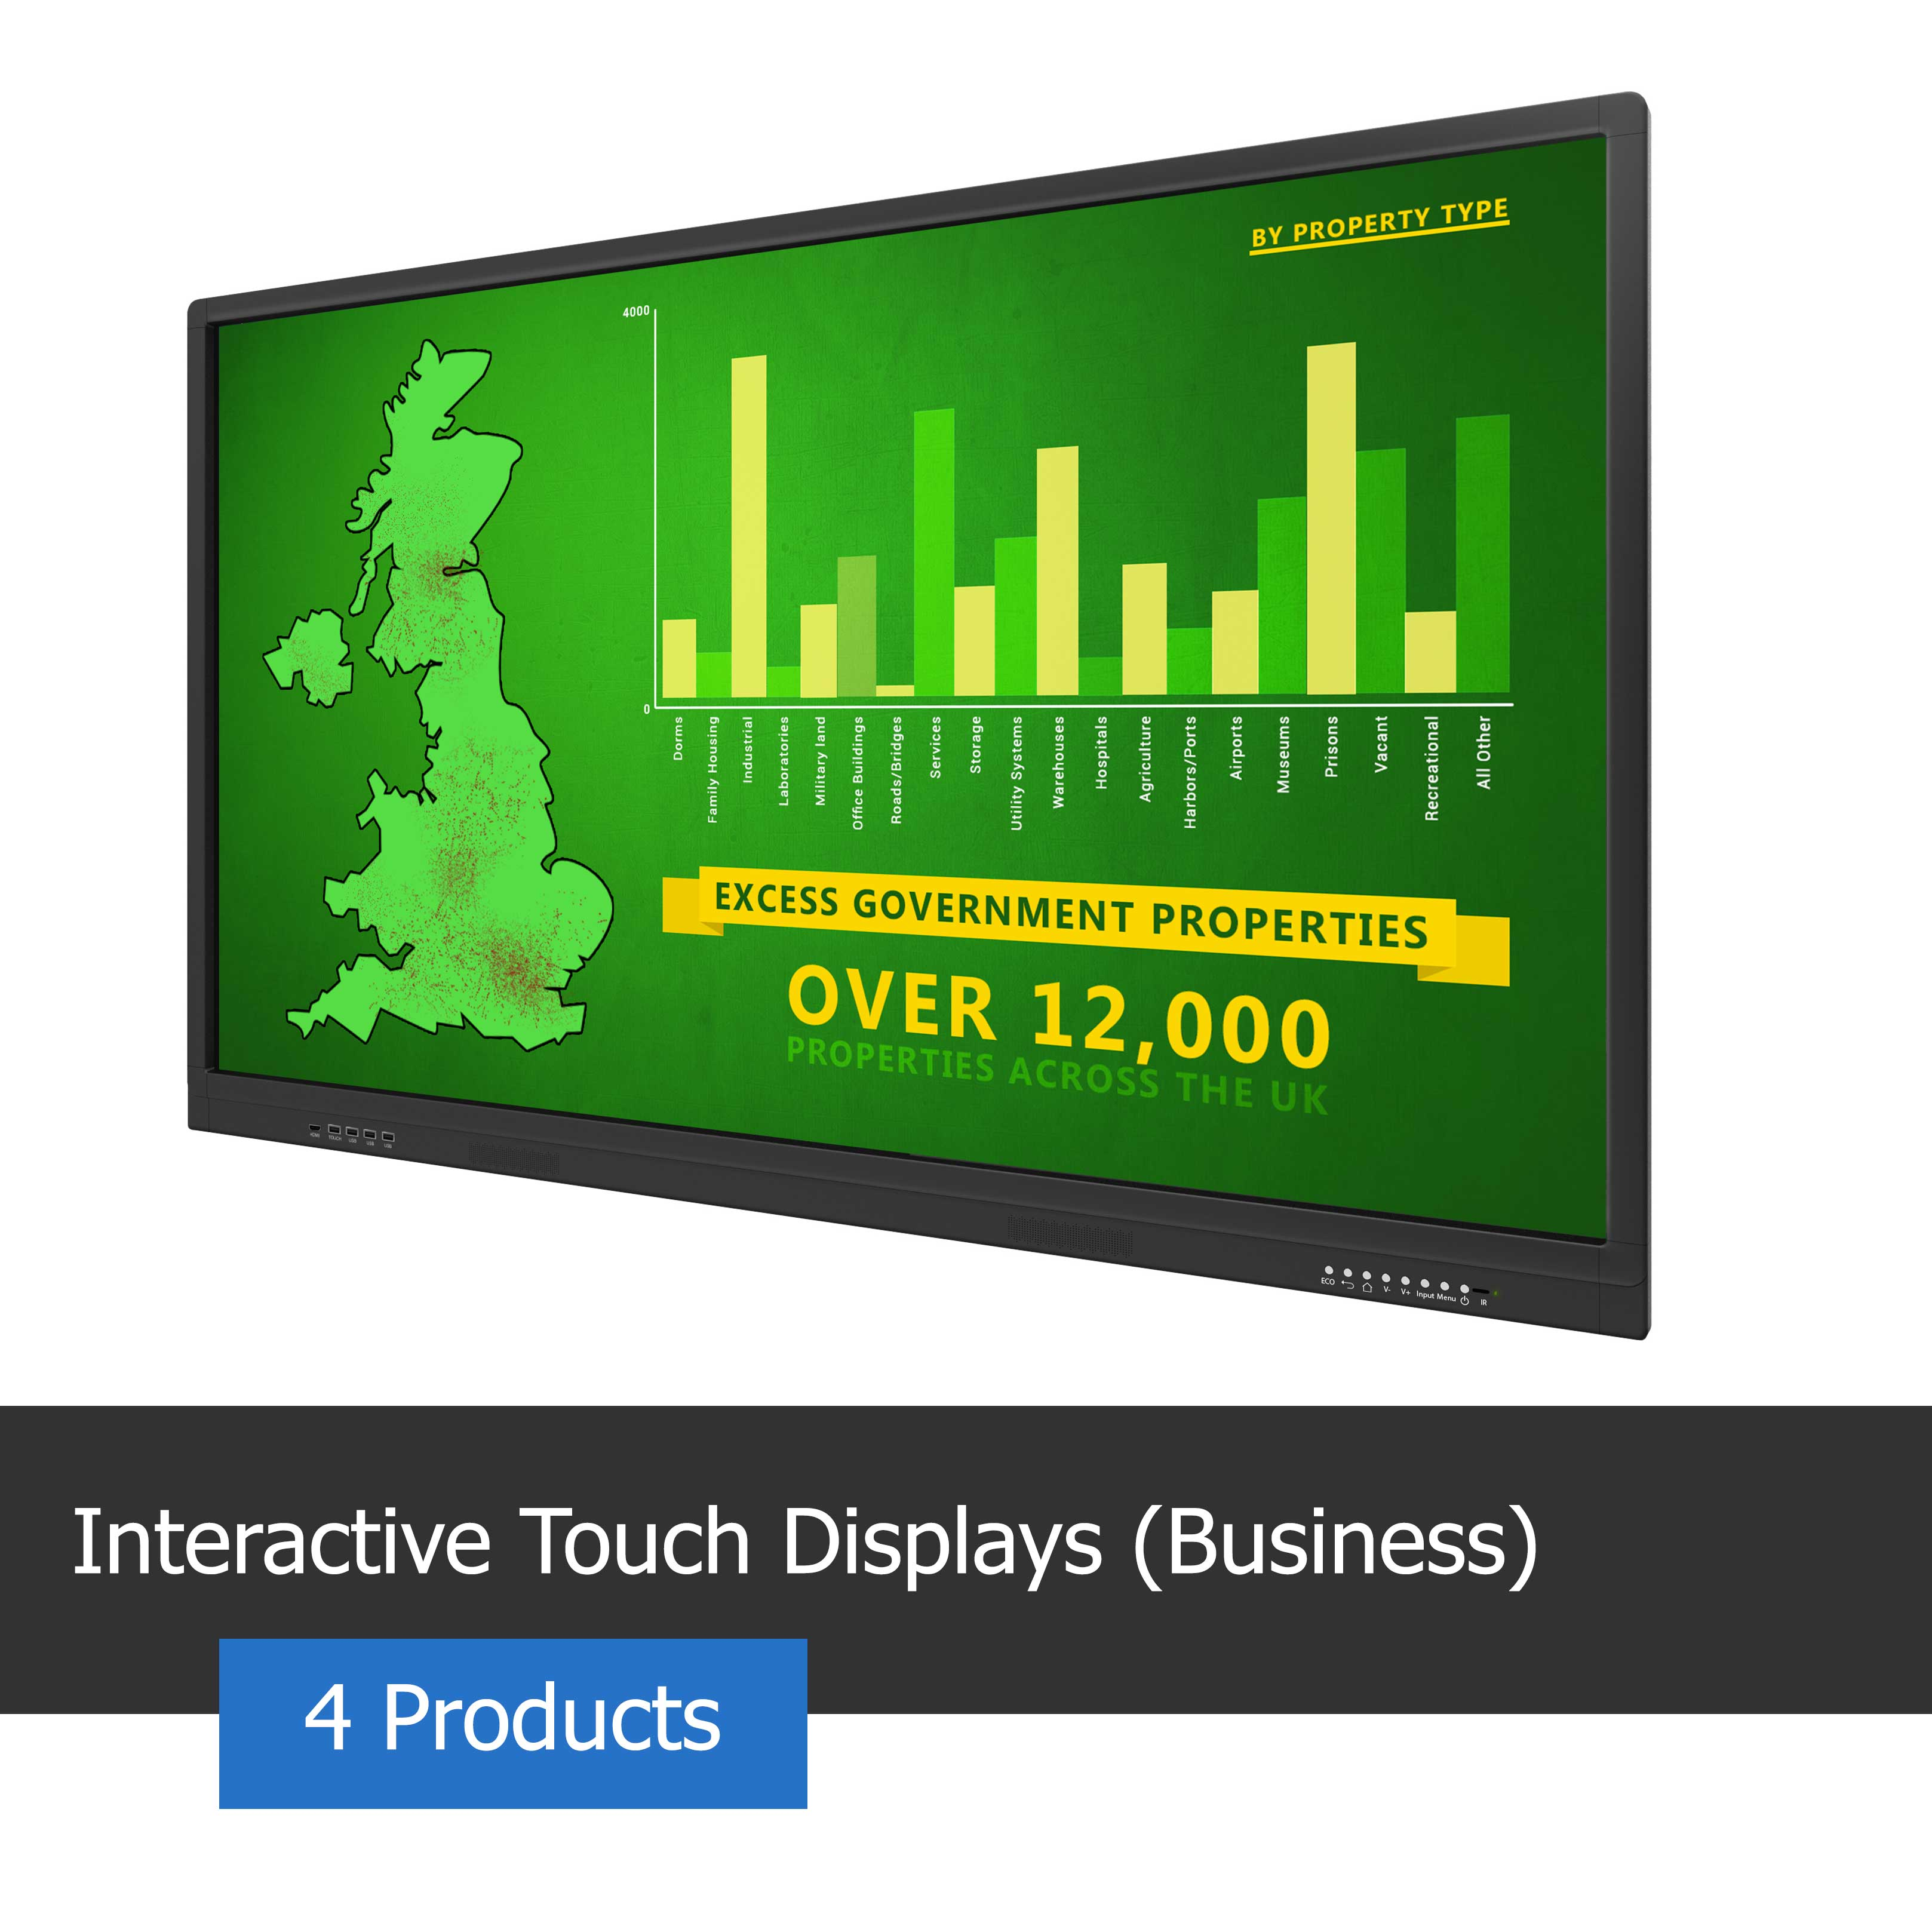 Image of a Interactive Touch Screen with meeting pad for business